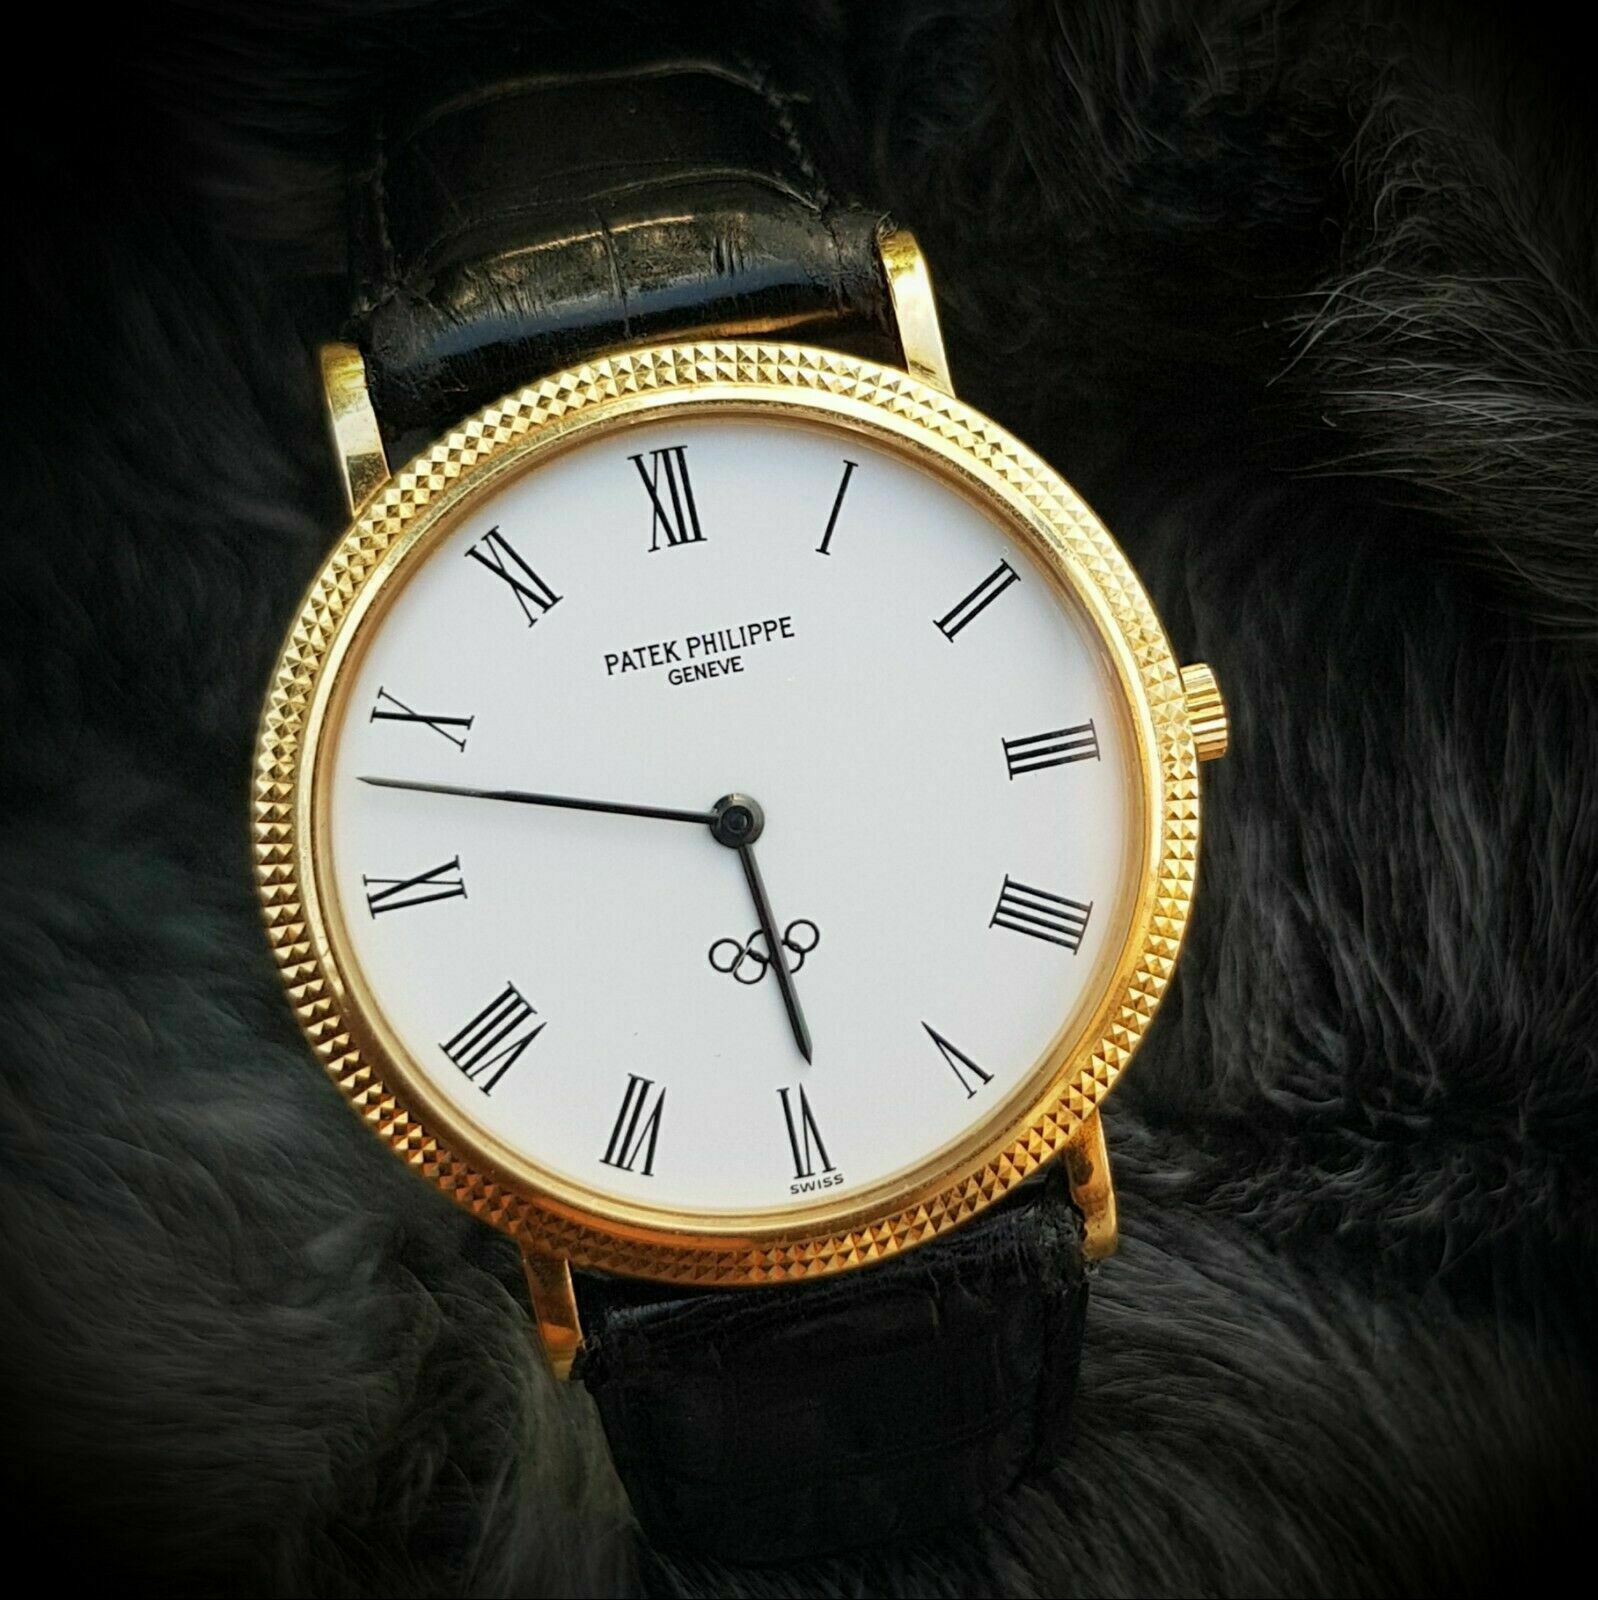 A 18K Patek Philippe watch given to a member of the International Olympic Committee sold for a five-figure sum ©RR Auction